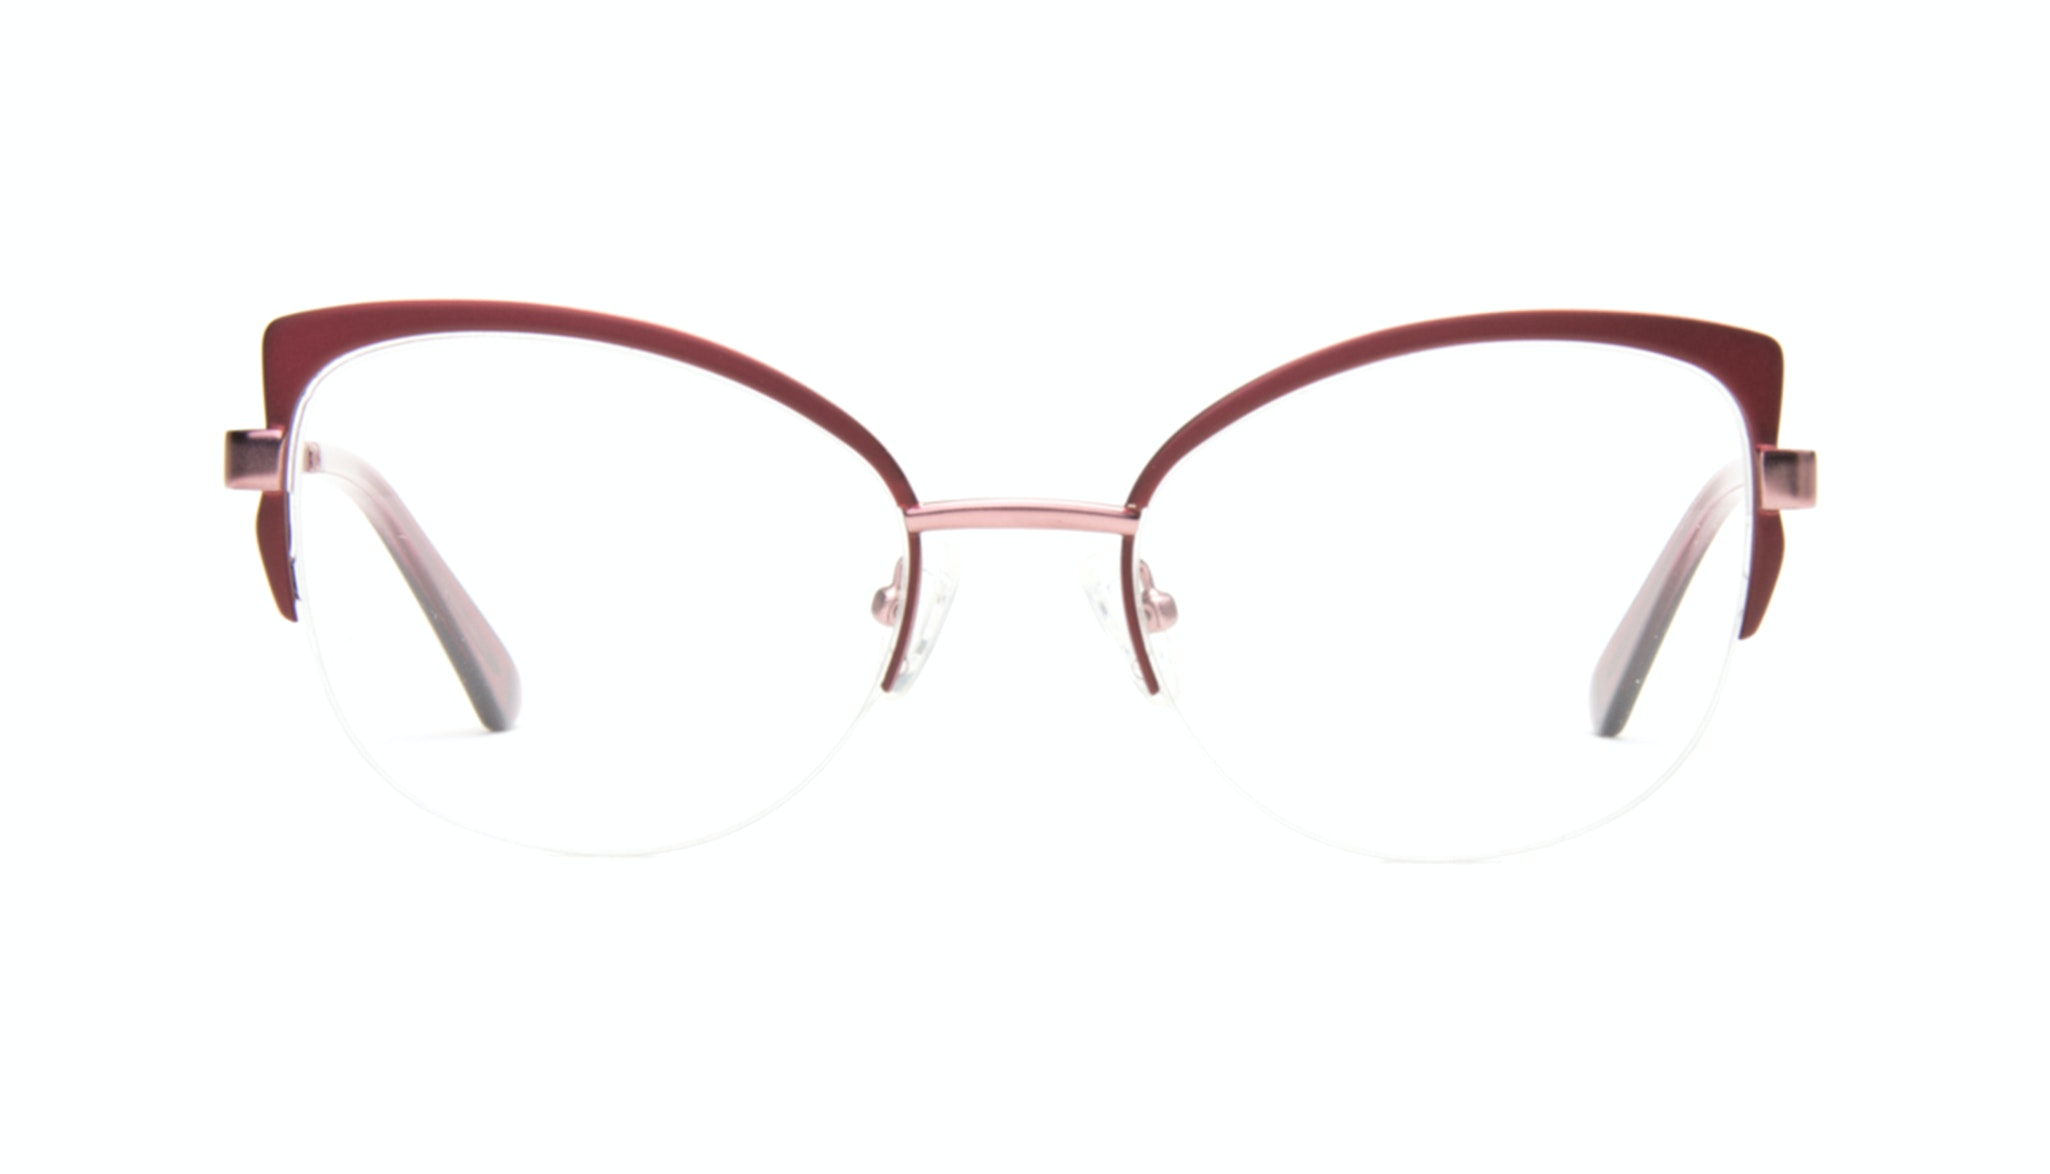 Affordable Fashion Glasses Cat Eye Semi-Rimless Eyeglasses Women Adore Cranberry